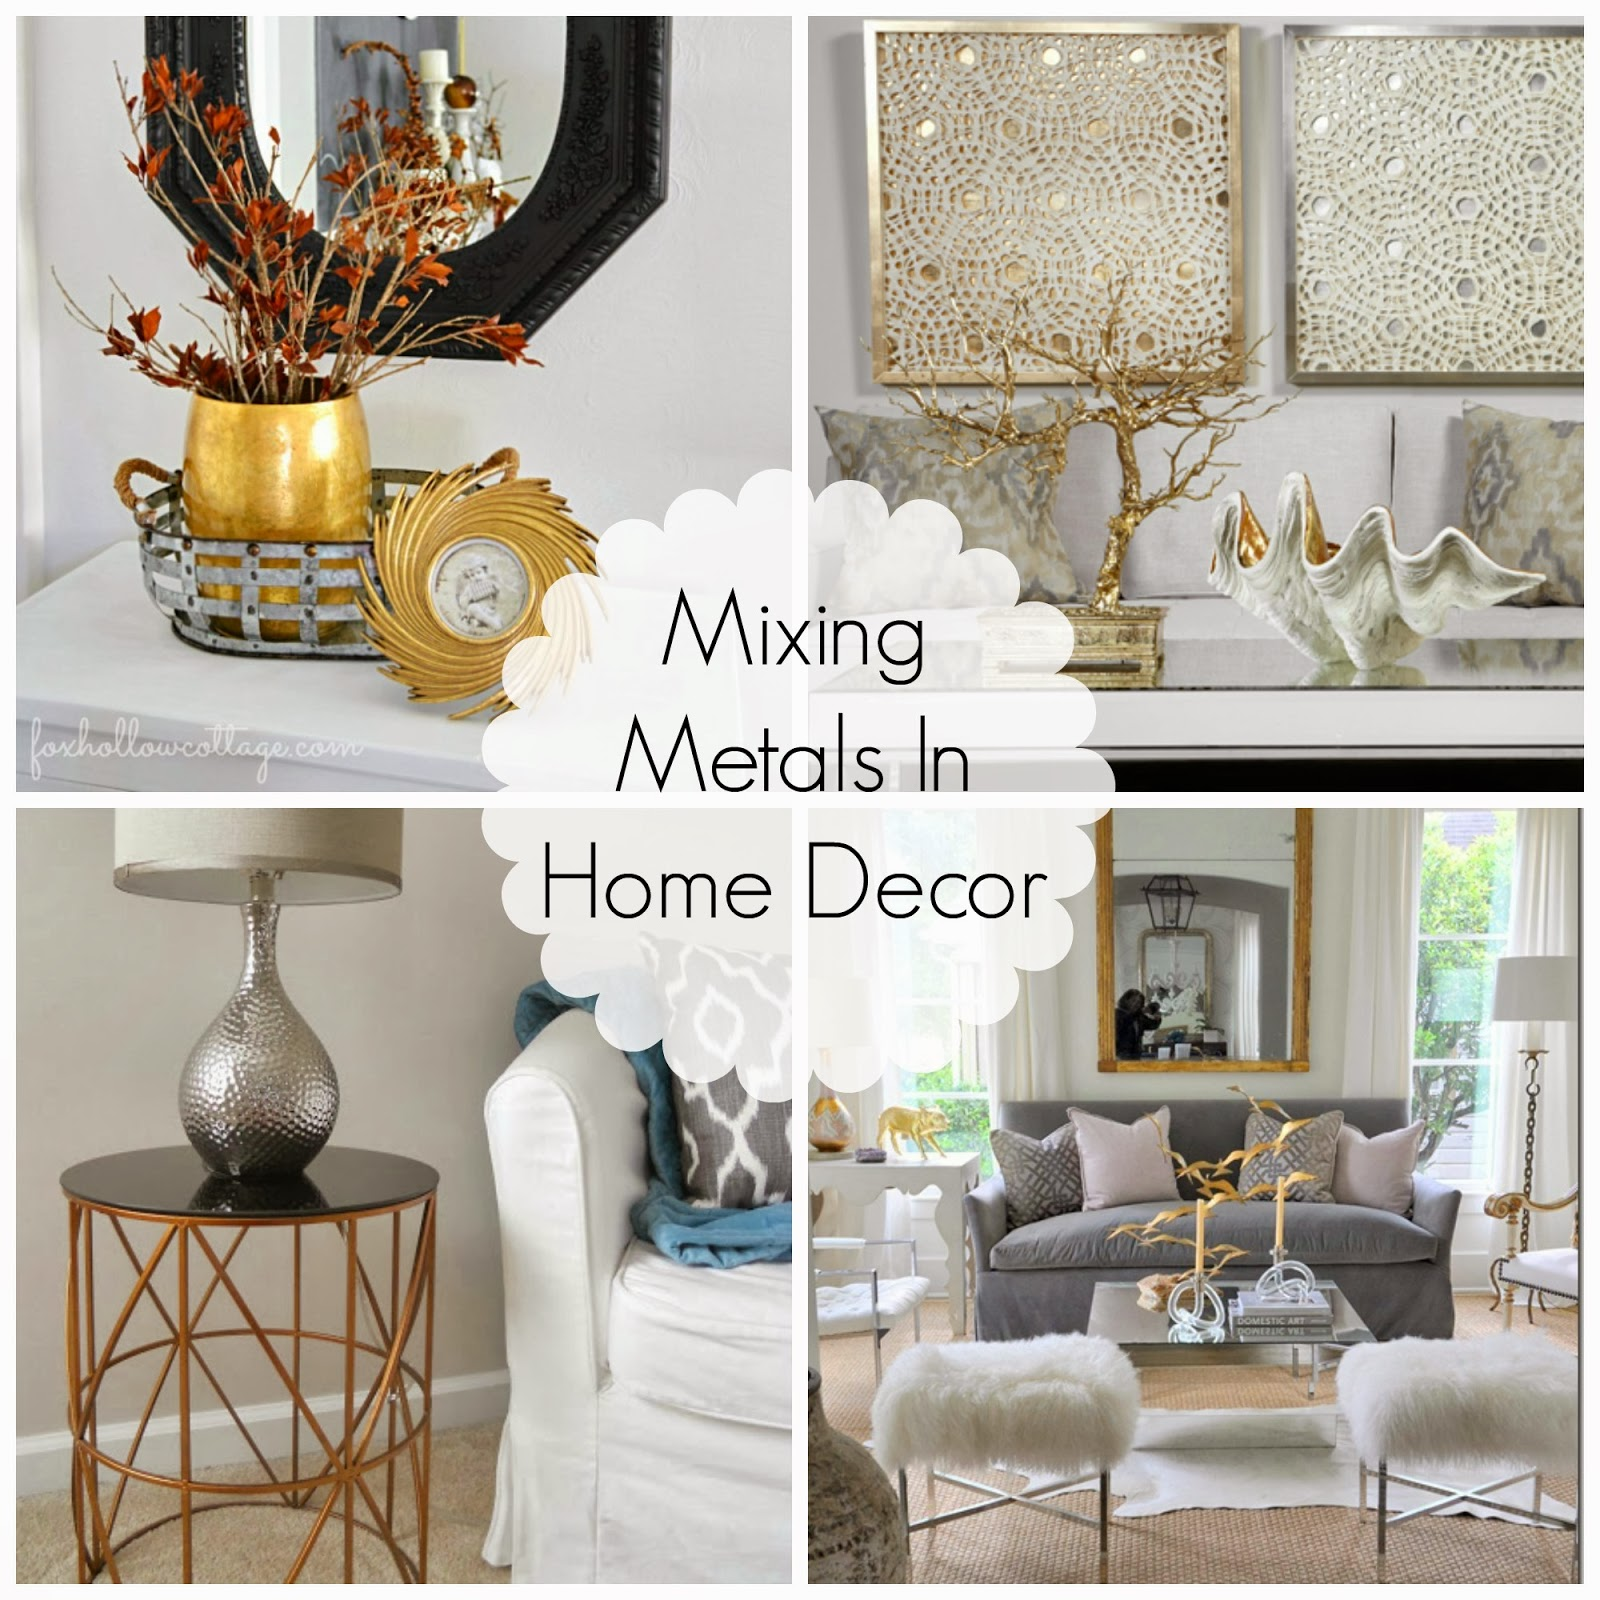 Mixing Metals In Home Decor